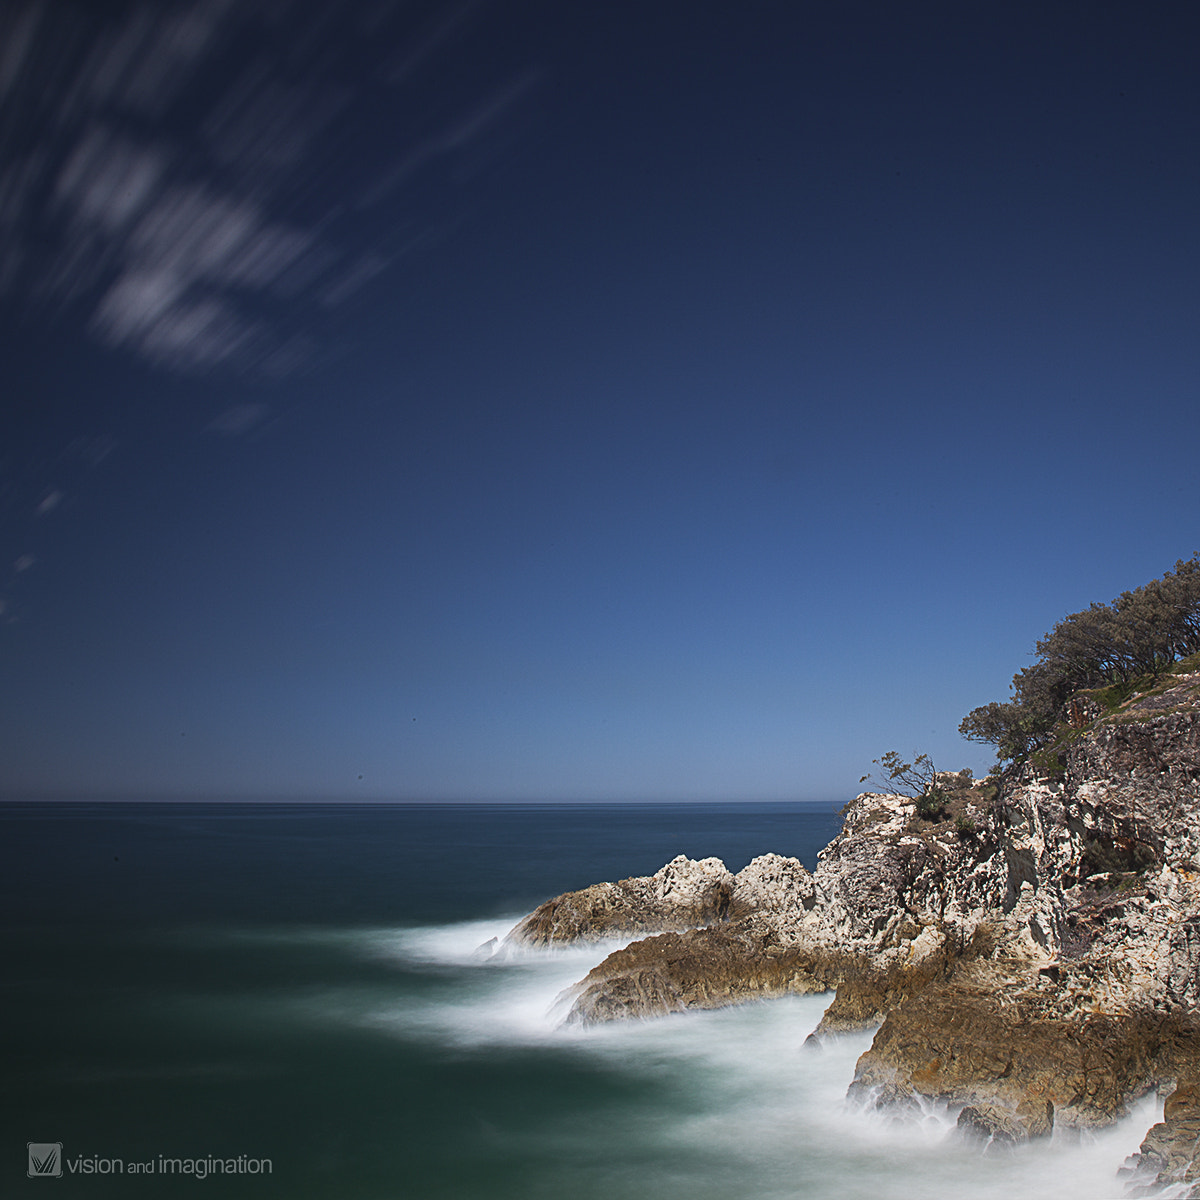 Photograph Pt Lookout by Garry Schlatter on 500px